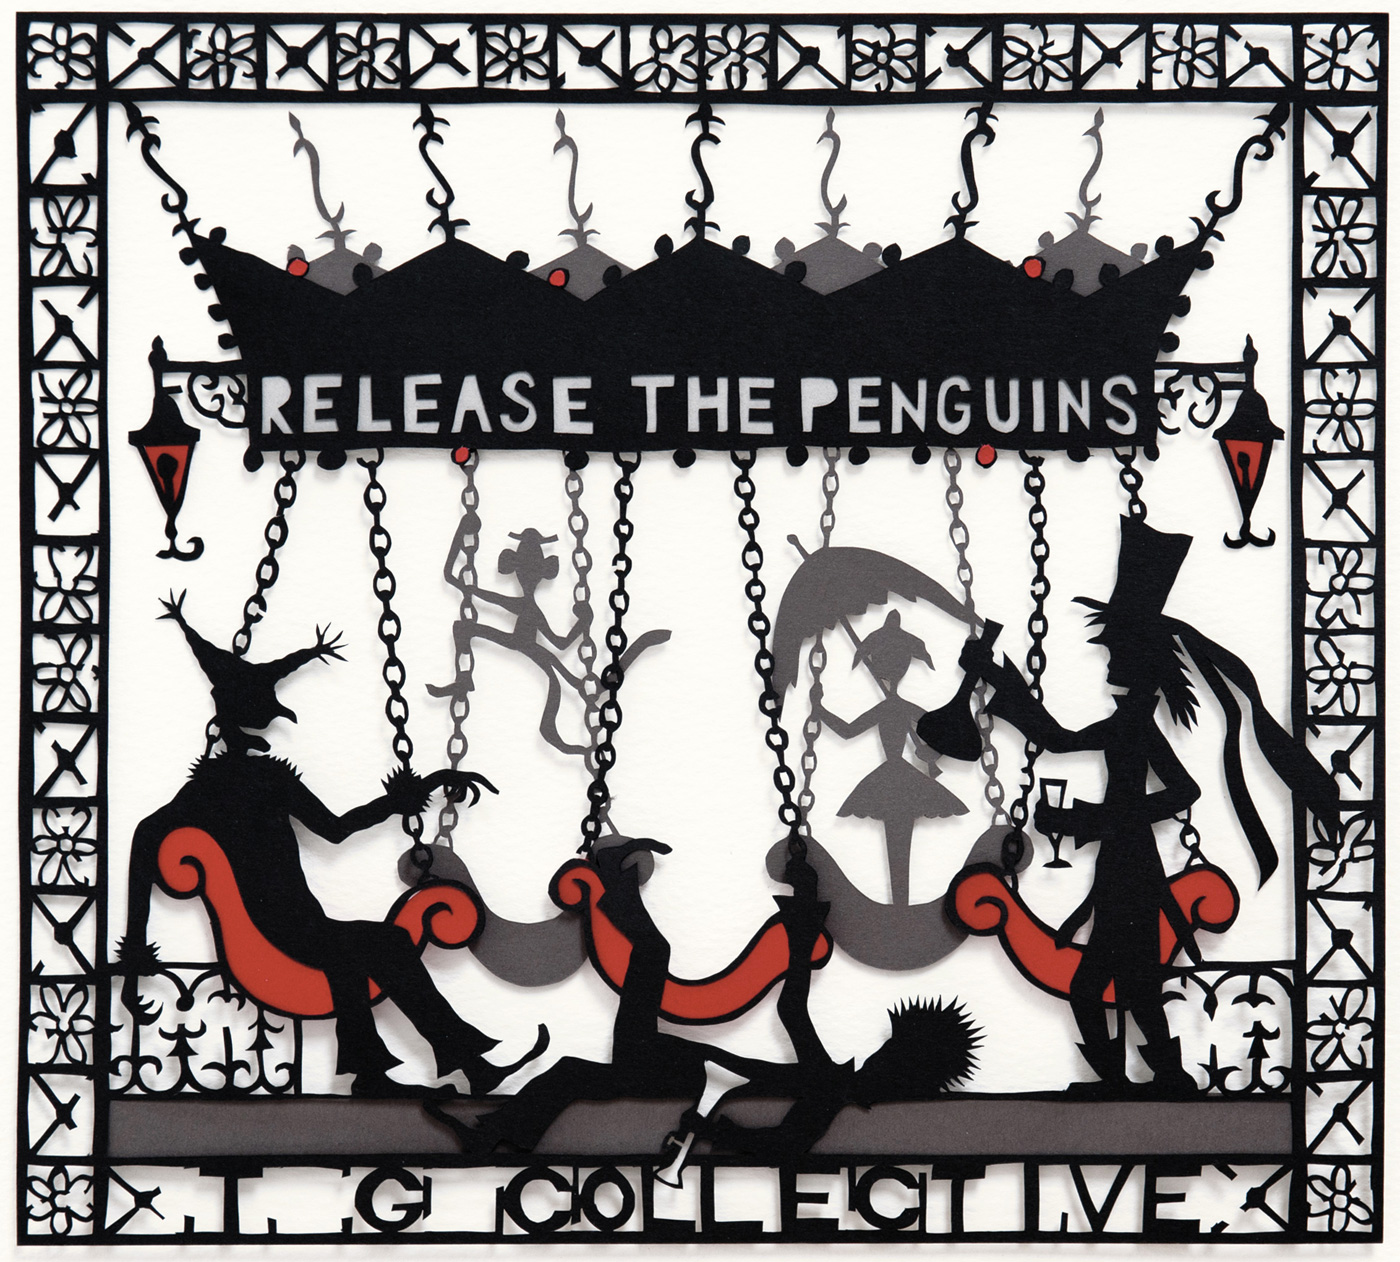 TG Collective - Release The Penguins